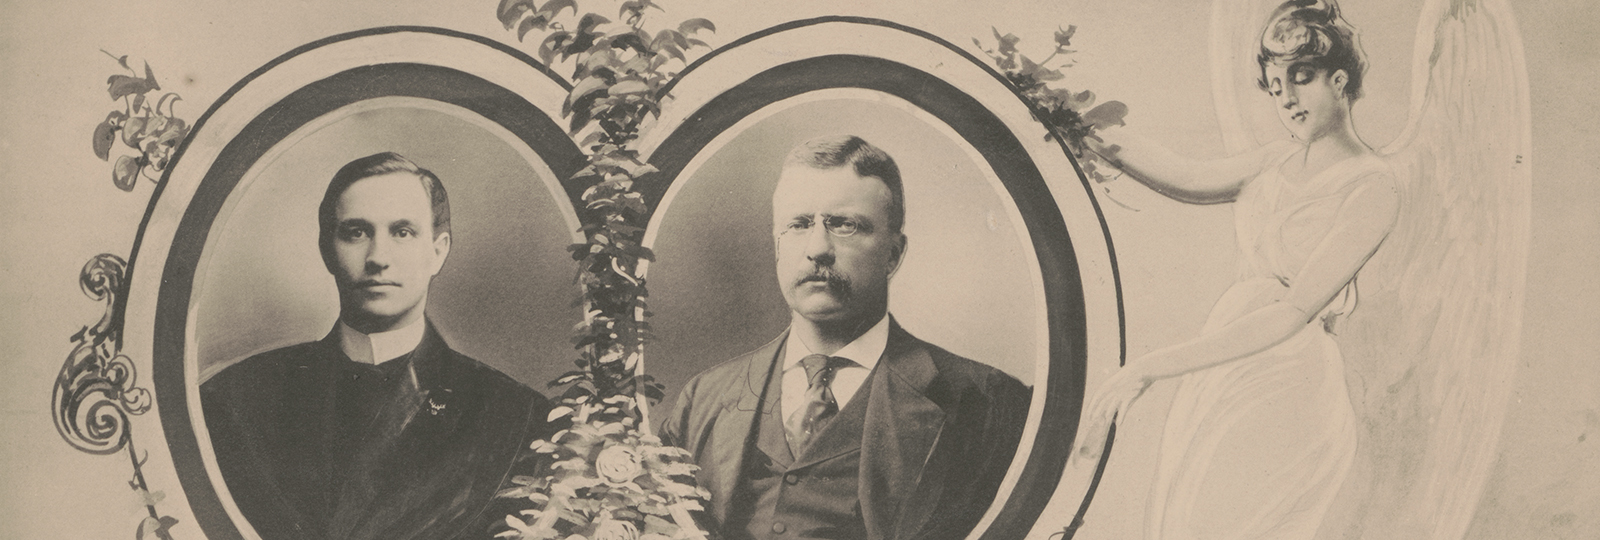 """The victory of the right"" (Poem with portraits of Theodore Roosevelt and John Mitchell), 1902"